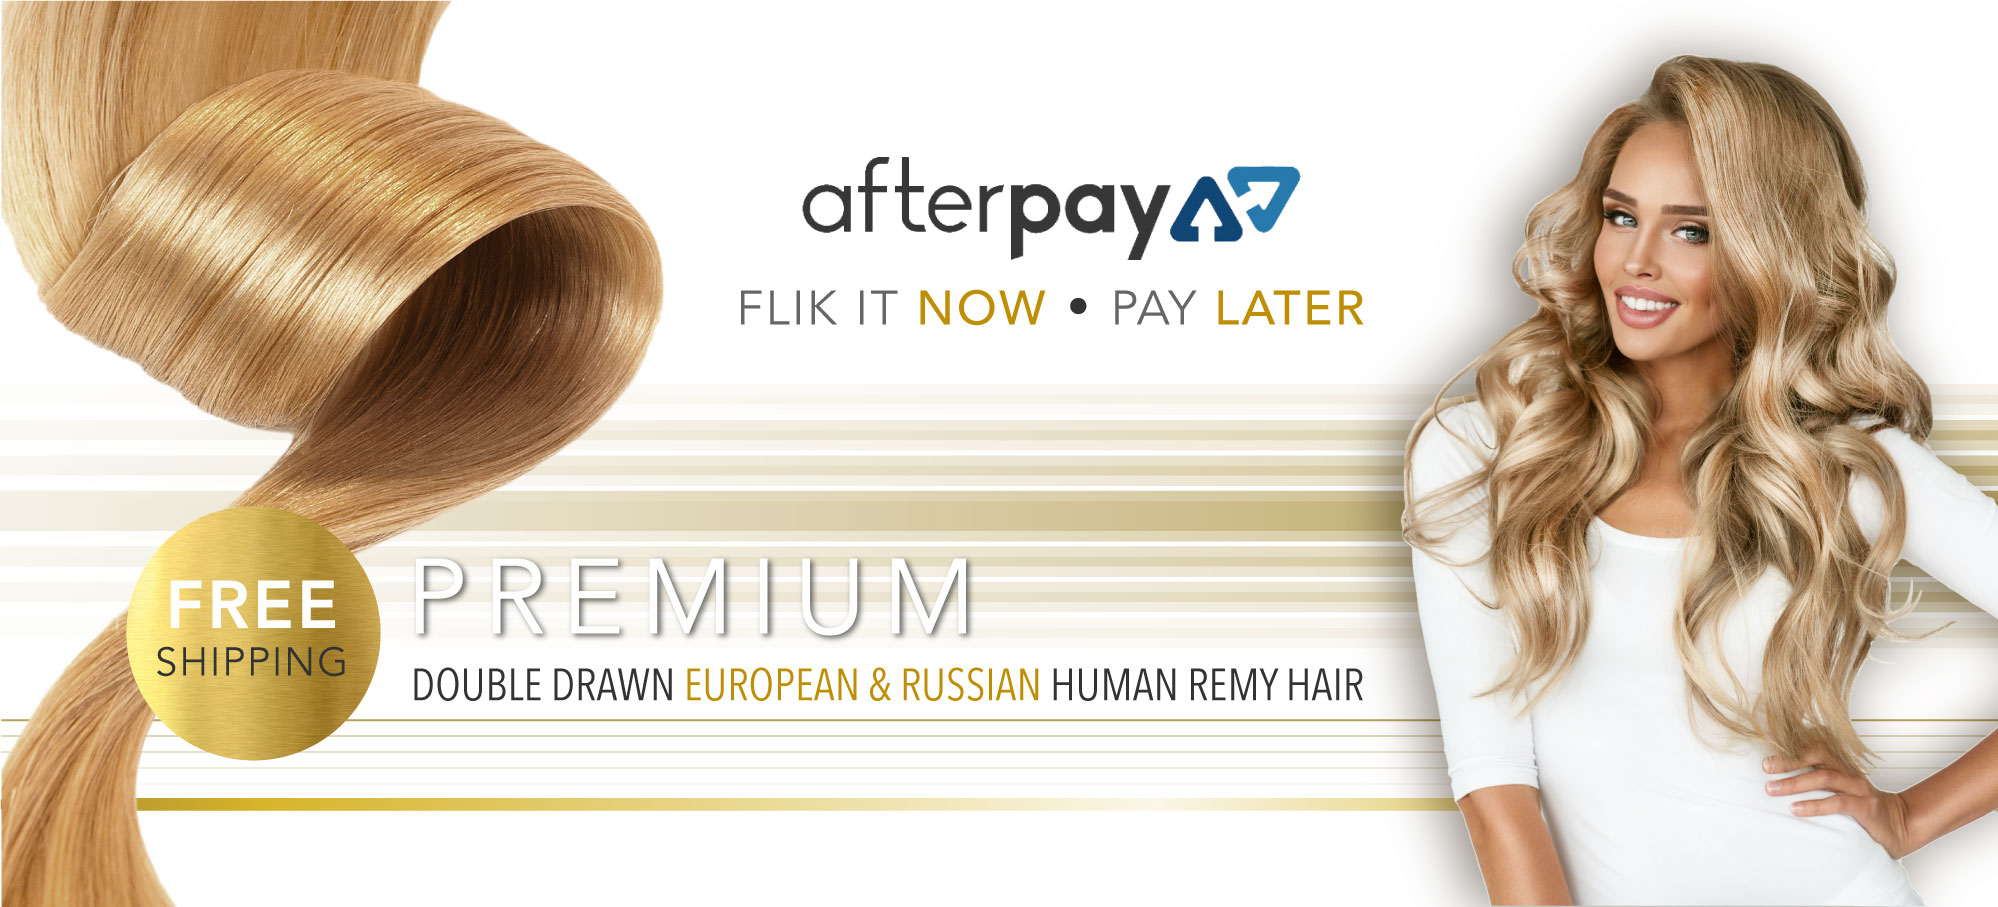 Afterpay Hair Extensions Australia Free Shipping Flik Hair